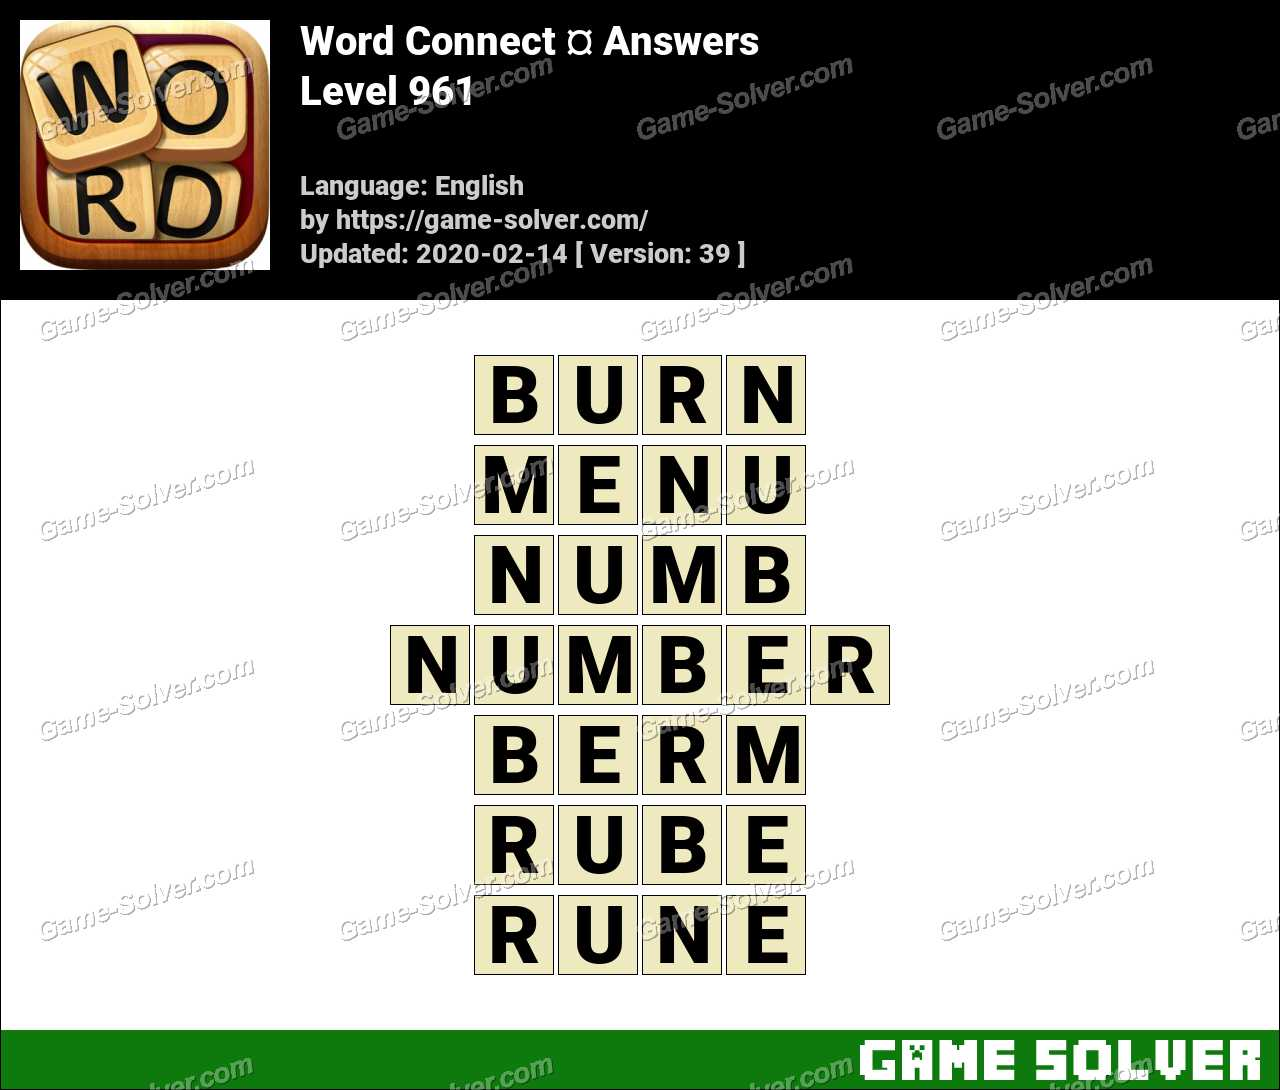 Word Connect Level 961 Answers